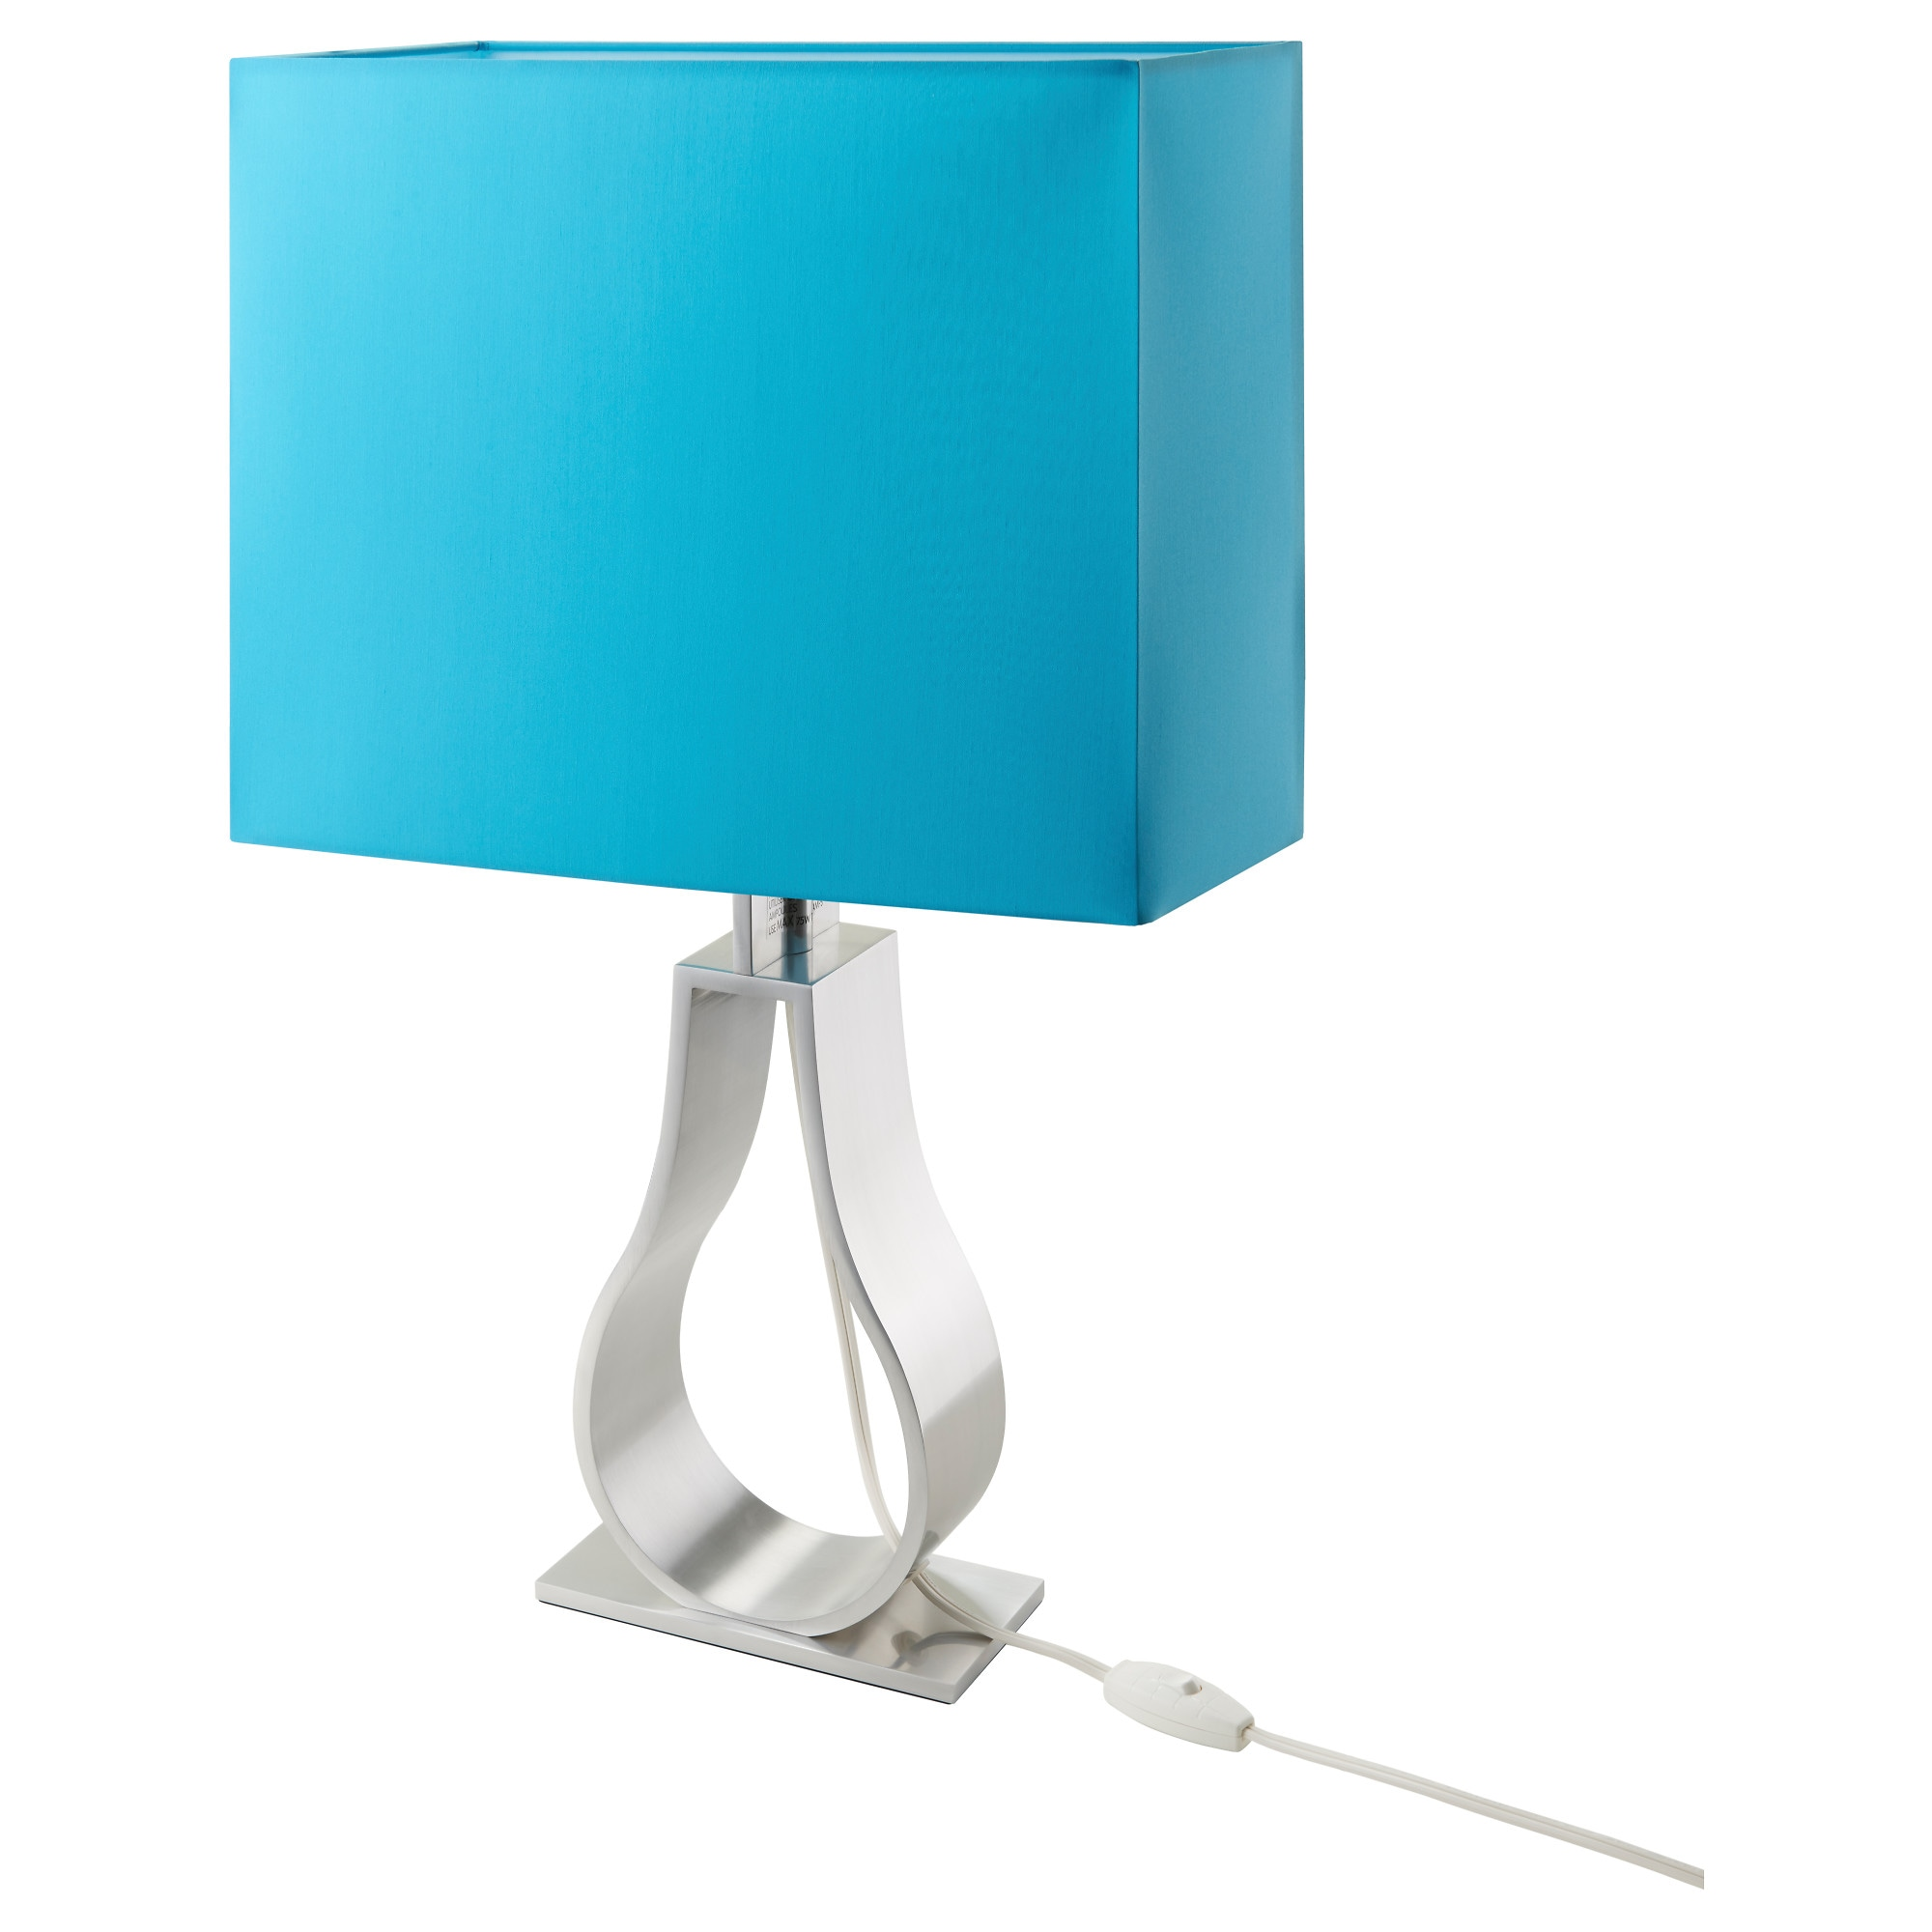 Lamp On Table: KLABB table lamp with LED bulb, turquoise Height: 24